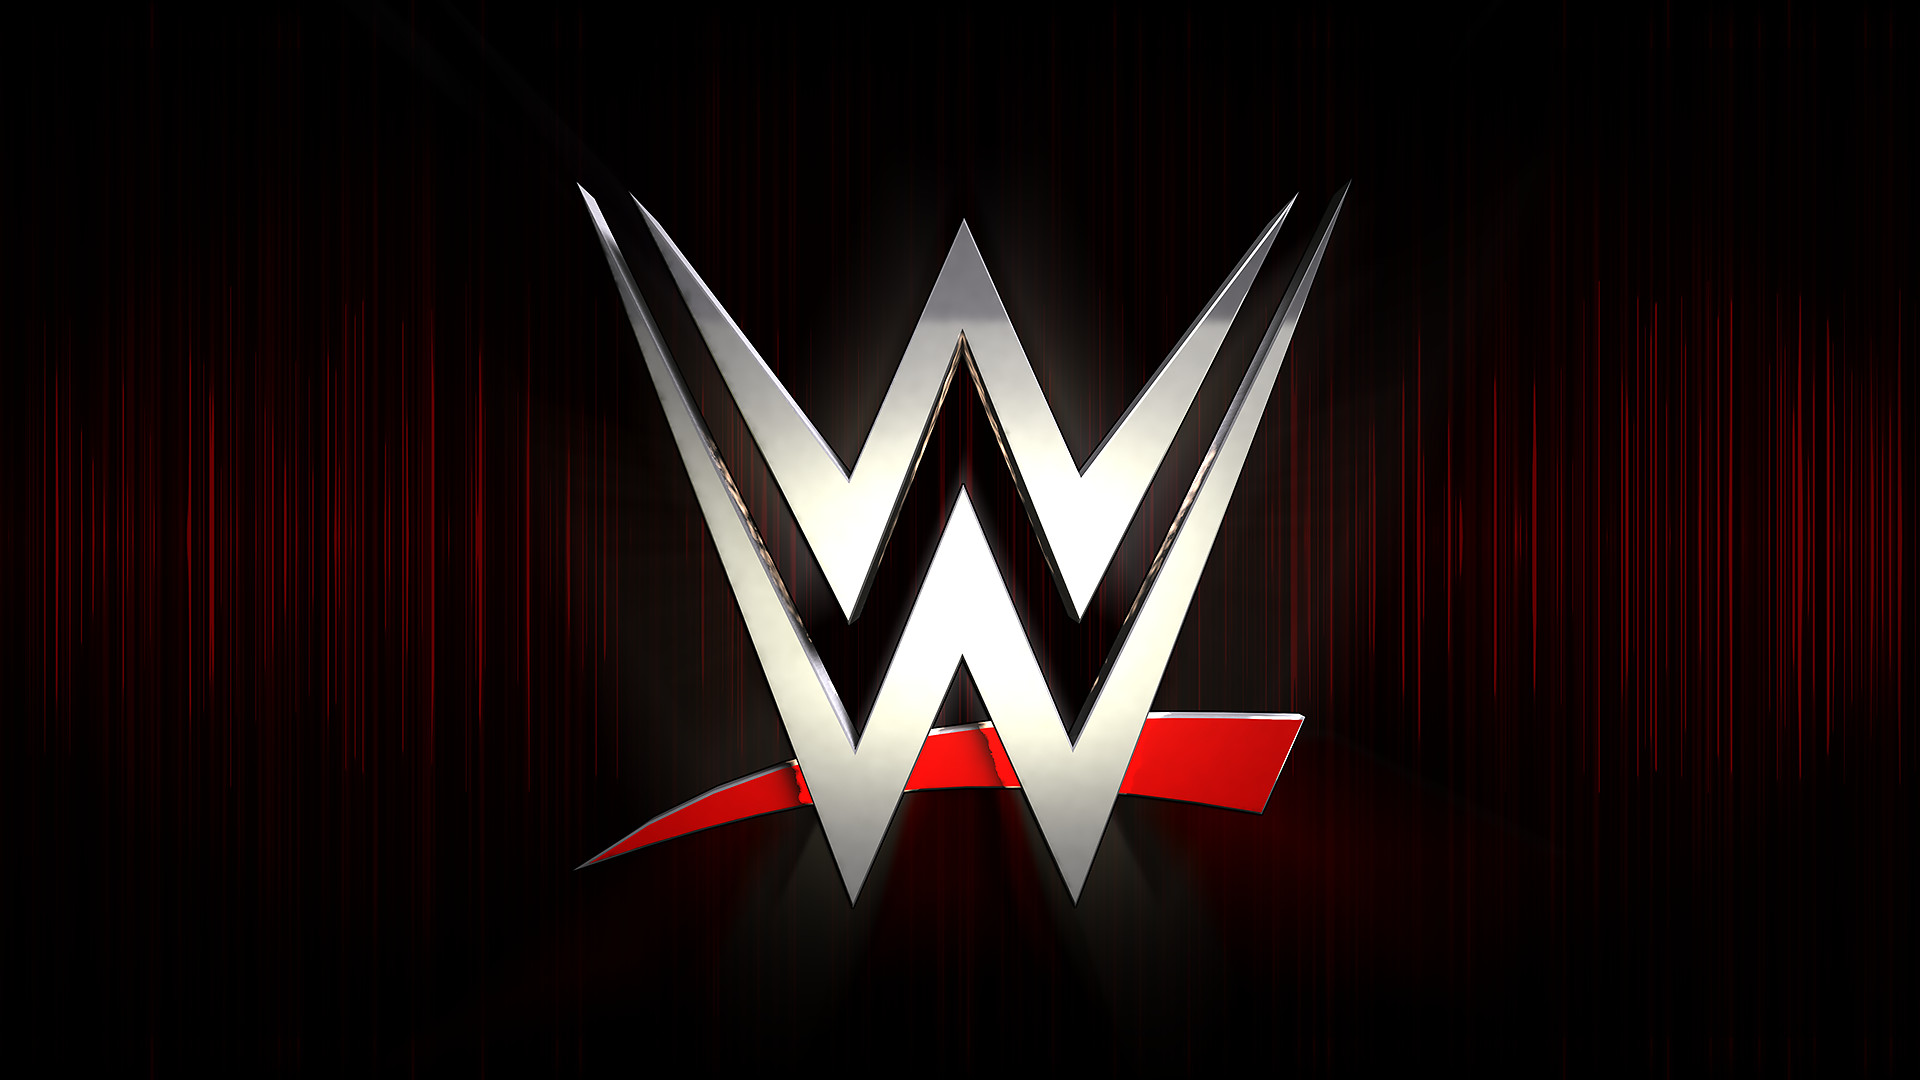 Wwe hd wallpaper 72 images 1920x1080 19201200 19201080 download 1920x1168 wwe superstar brock lesnar hd images voltagebd Images